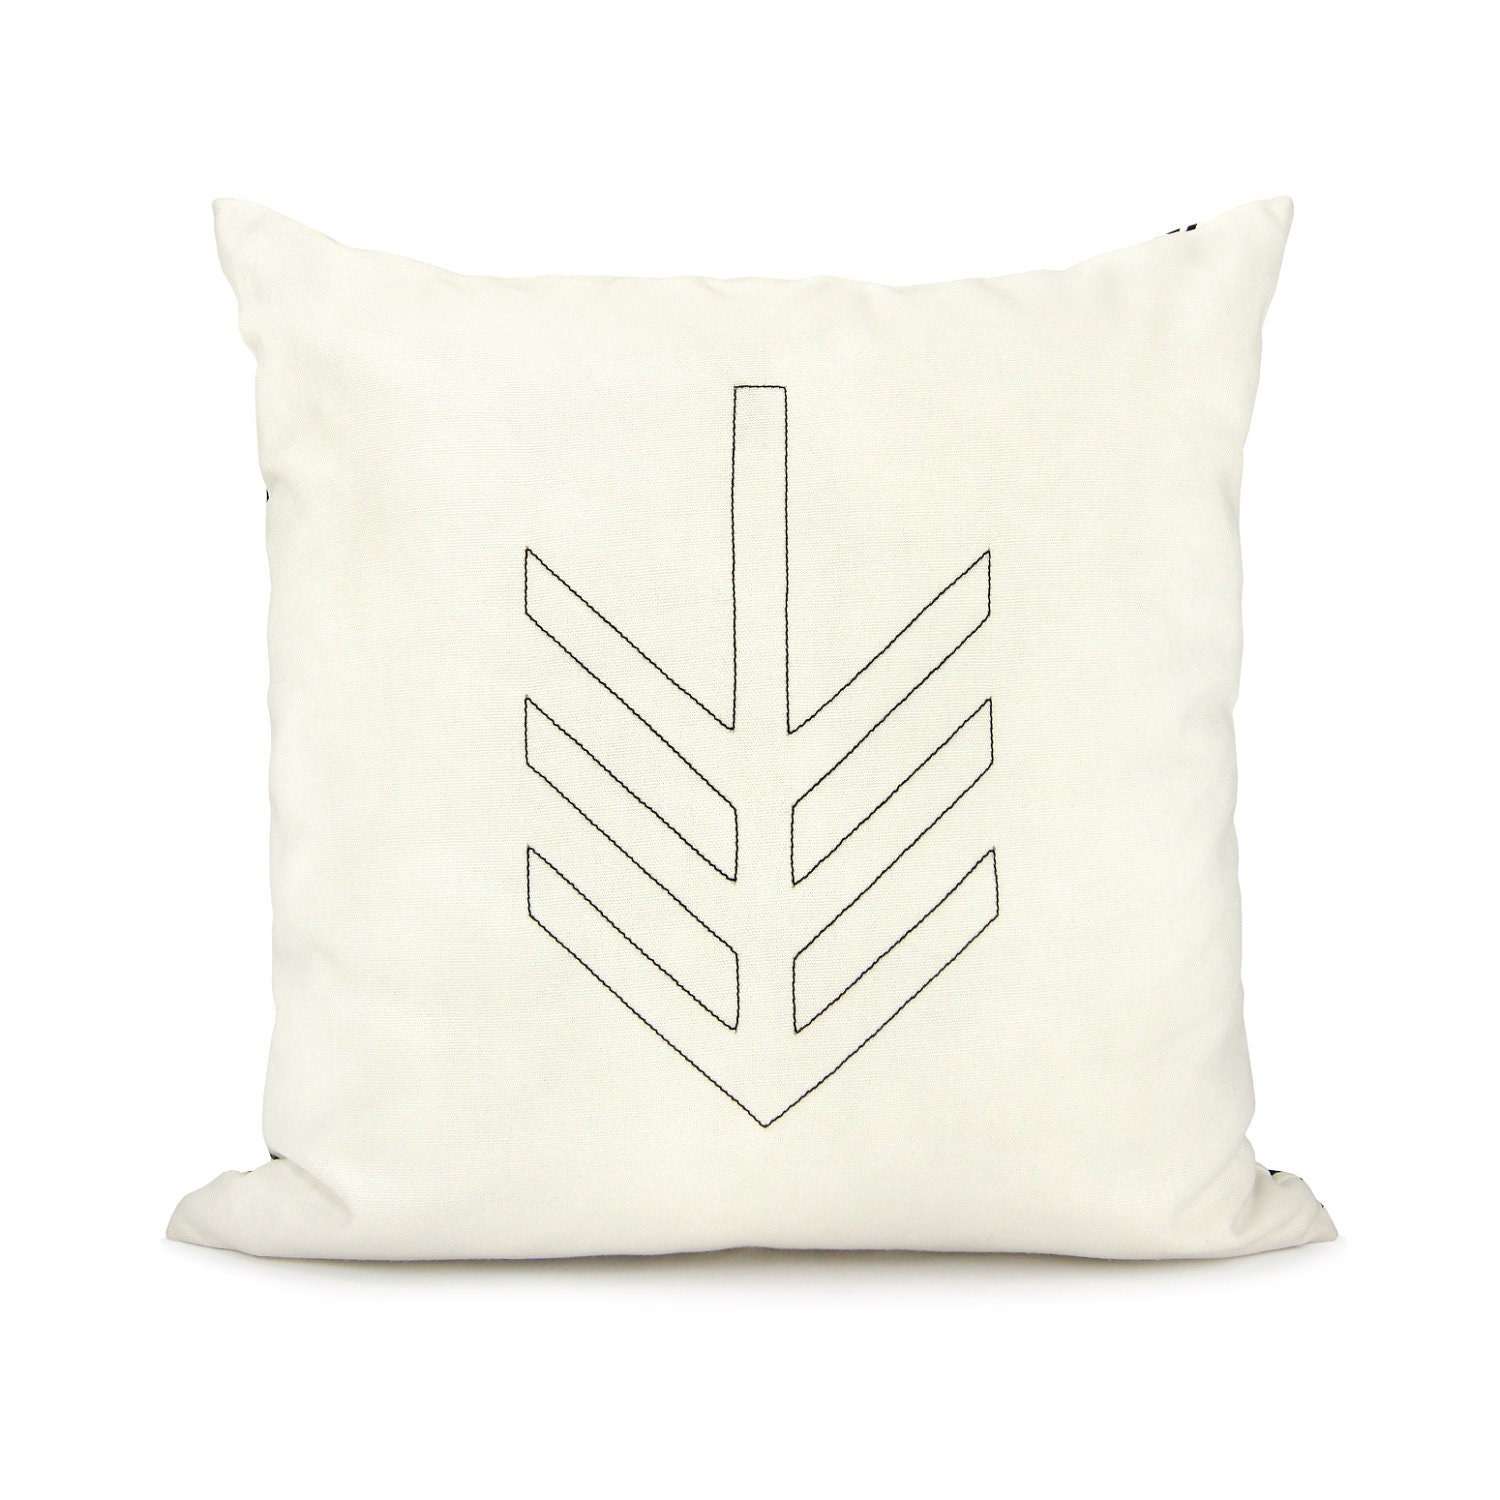 Geometric decorative pillow cover - Black arrow shape on off white canvas and geometric owl print back - 18x18 accent pillow cover